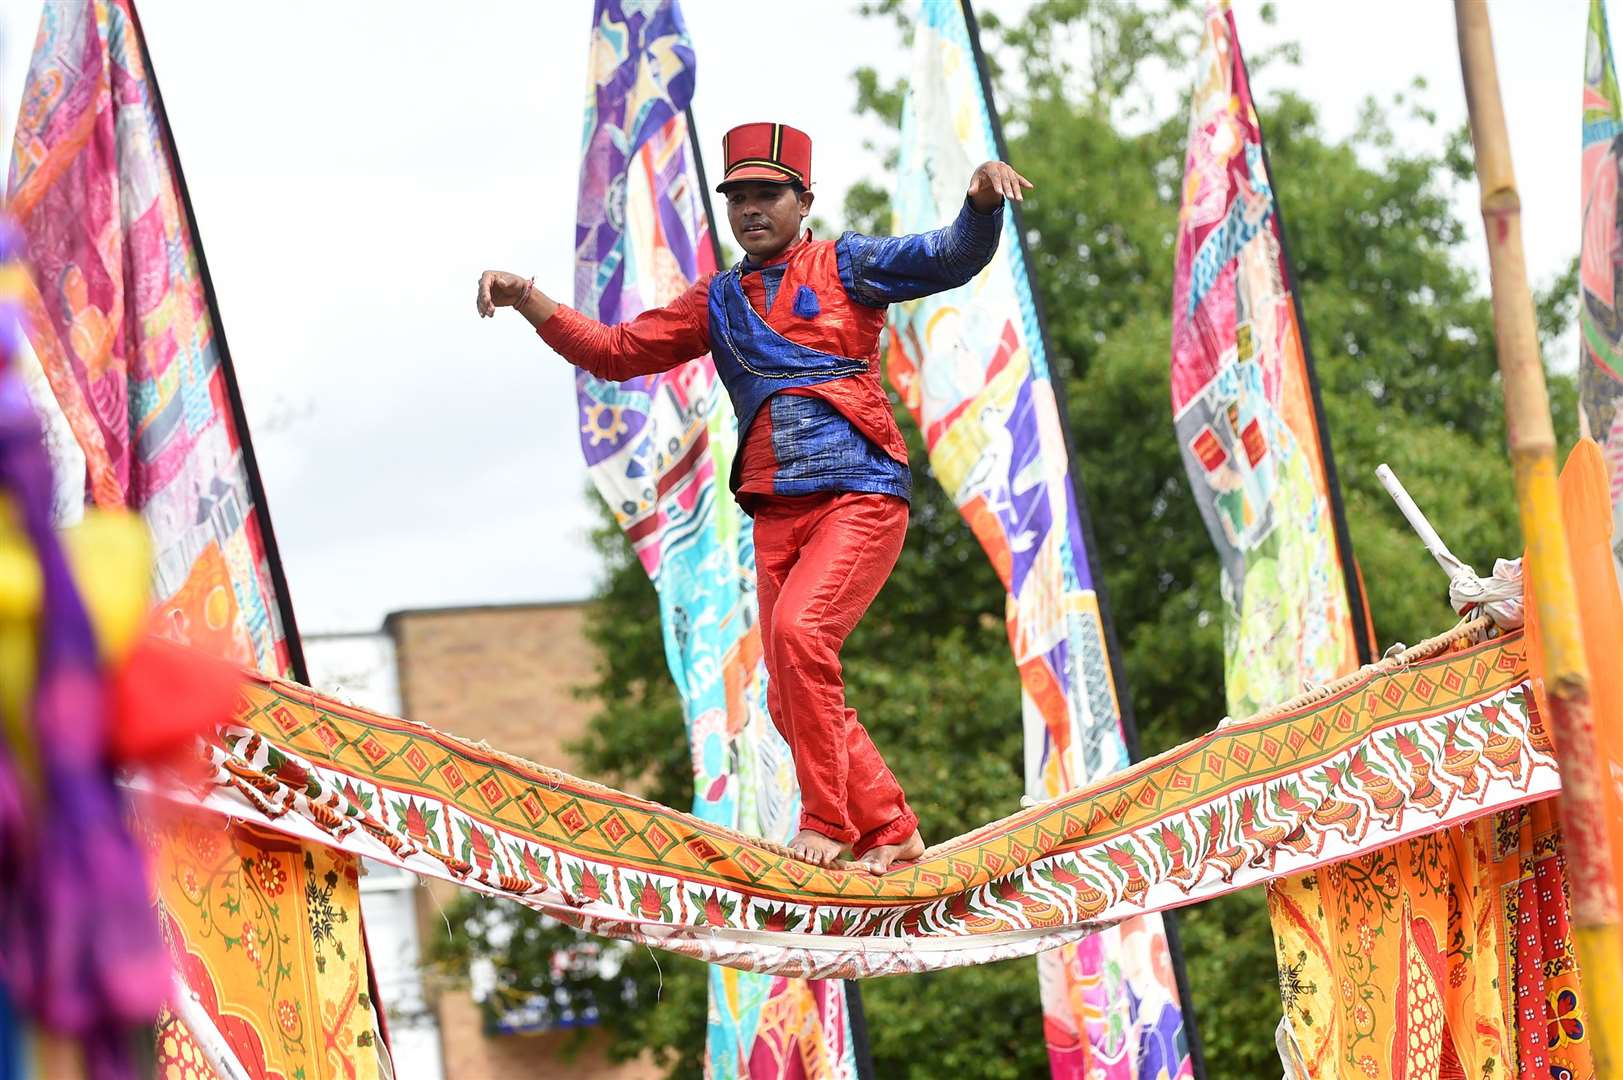 Circus Raj brought many acts to the Mela including a slack rope walker